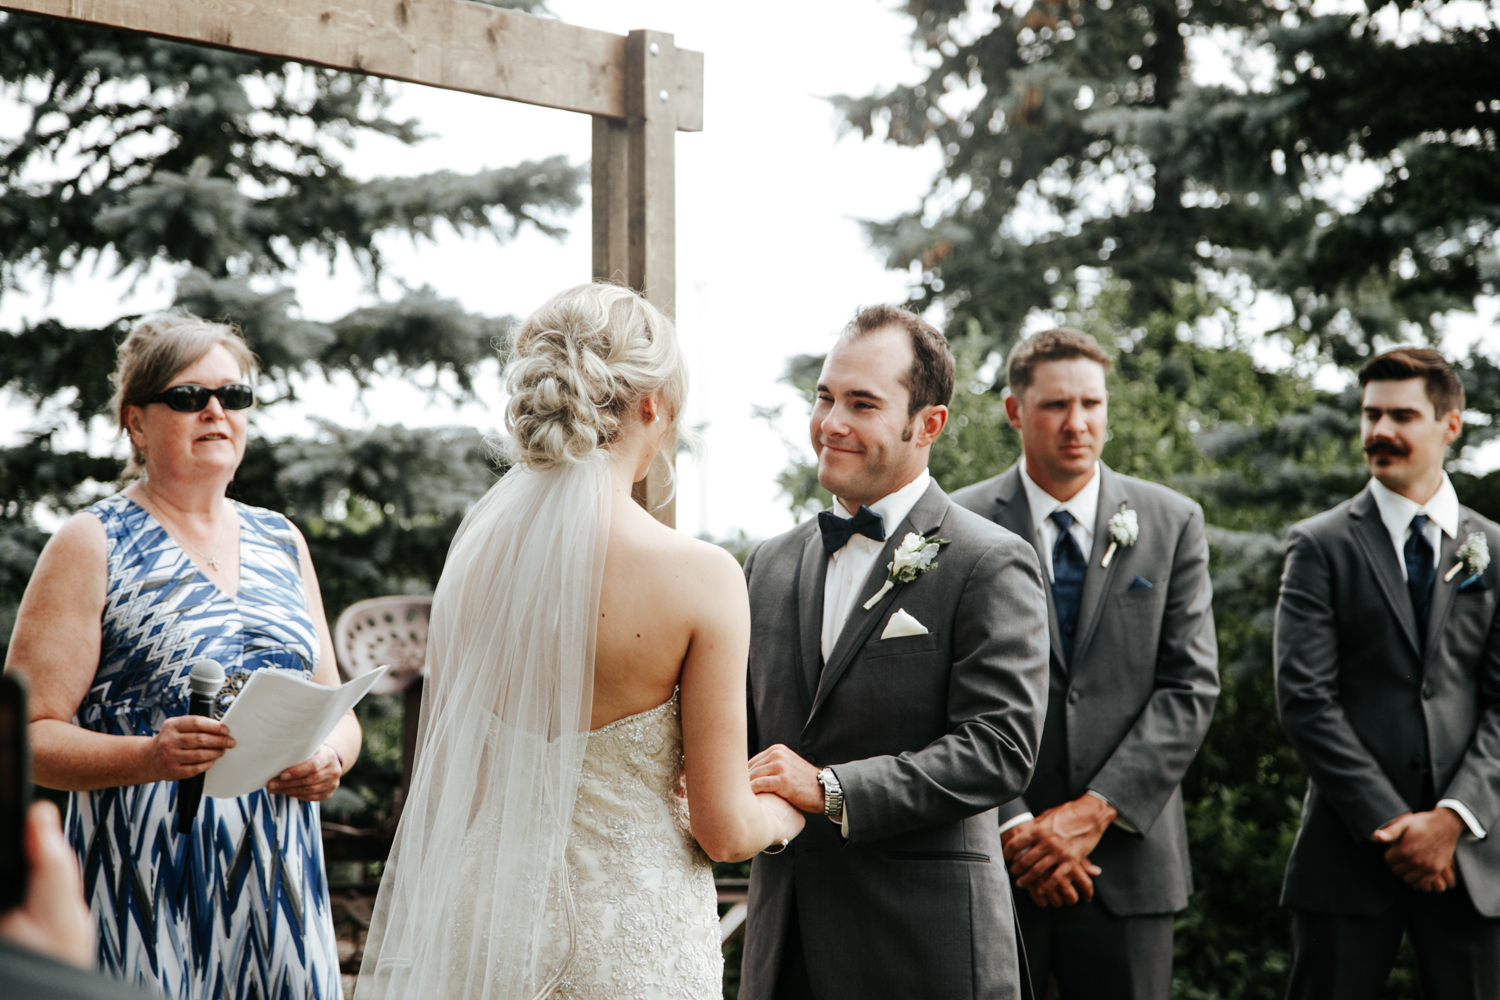 lethbridge-photographer-readymade-community-centre-wedding-coaldale-bailey-joel-picture-image-photo-11.jpg